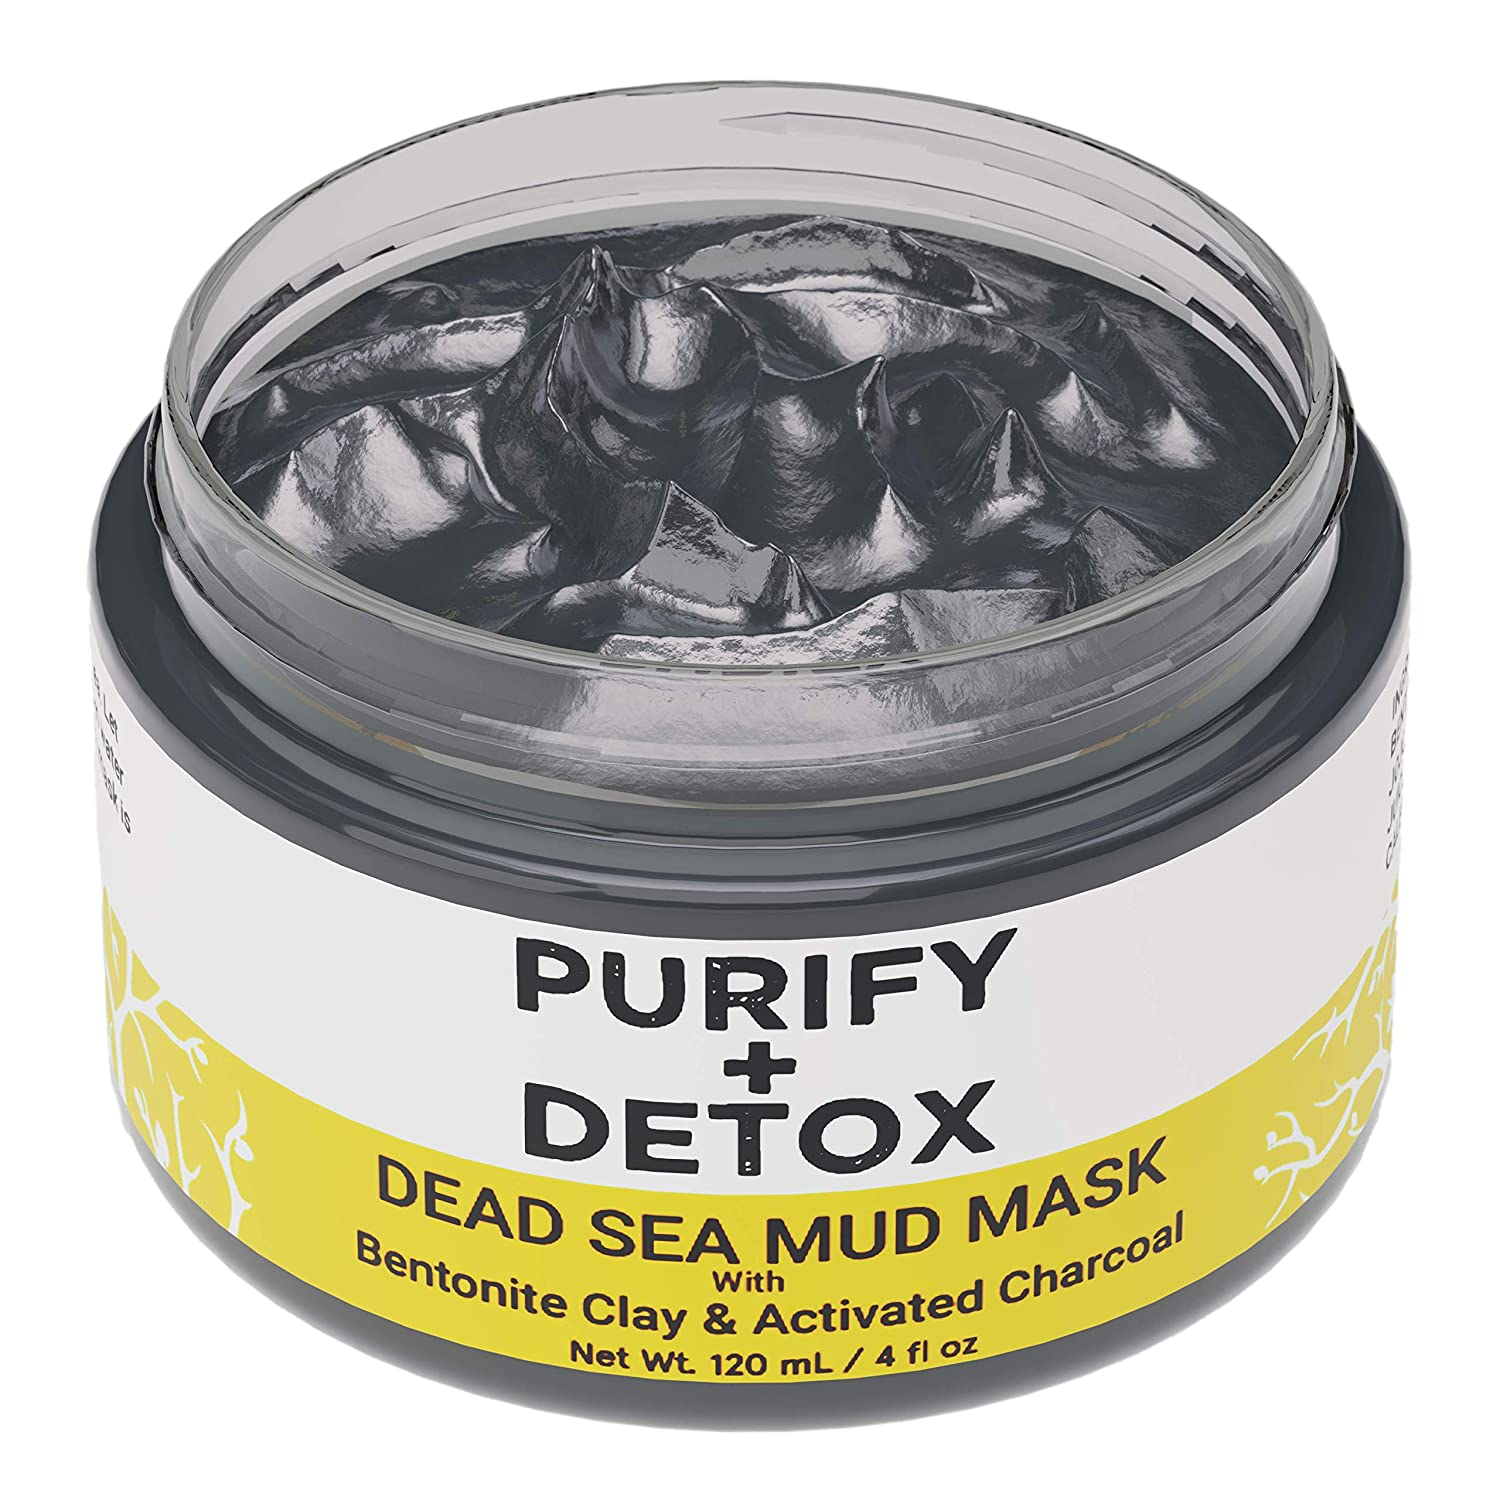 Dead Sea Mud Mask for Face with Bentonite Clay and Activated Charcoal - Pore Minimizer, Clear Blackheads- for Acne-Prone, Oily Skin Exfoliating Facial Mask, Armpit Detox - Formulated in San Francisco